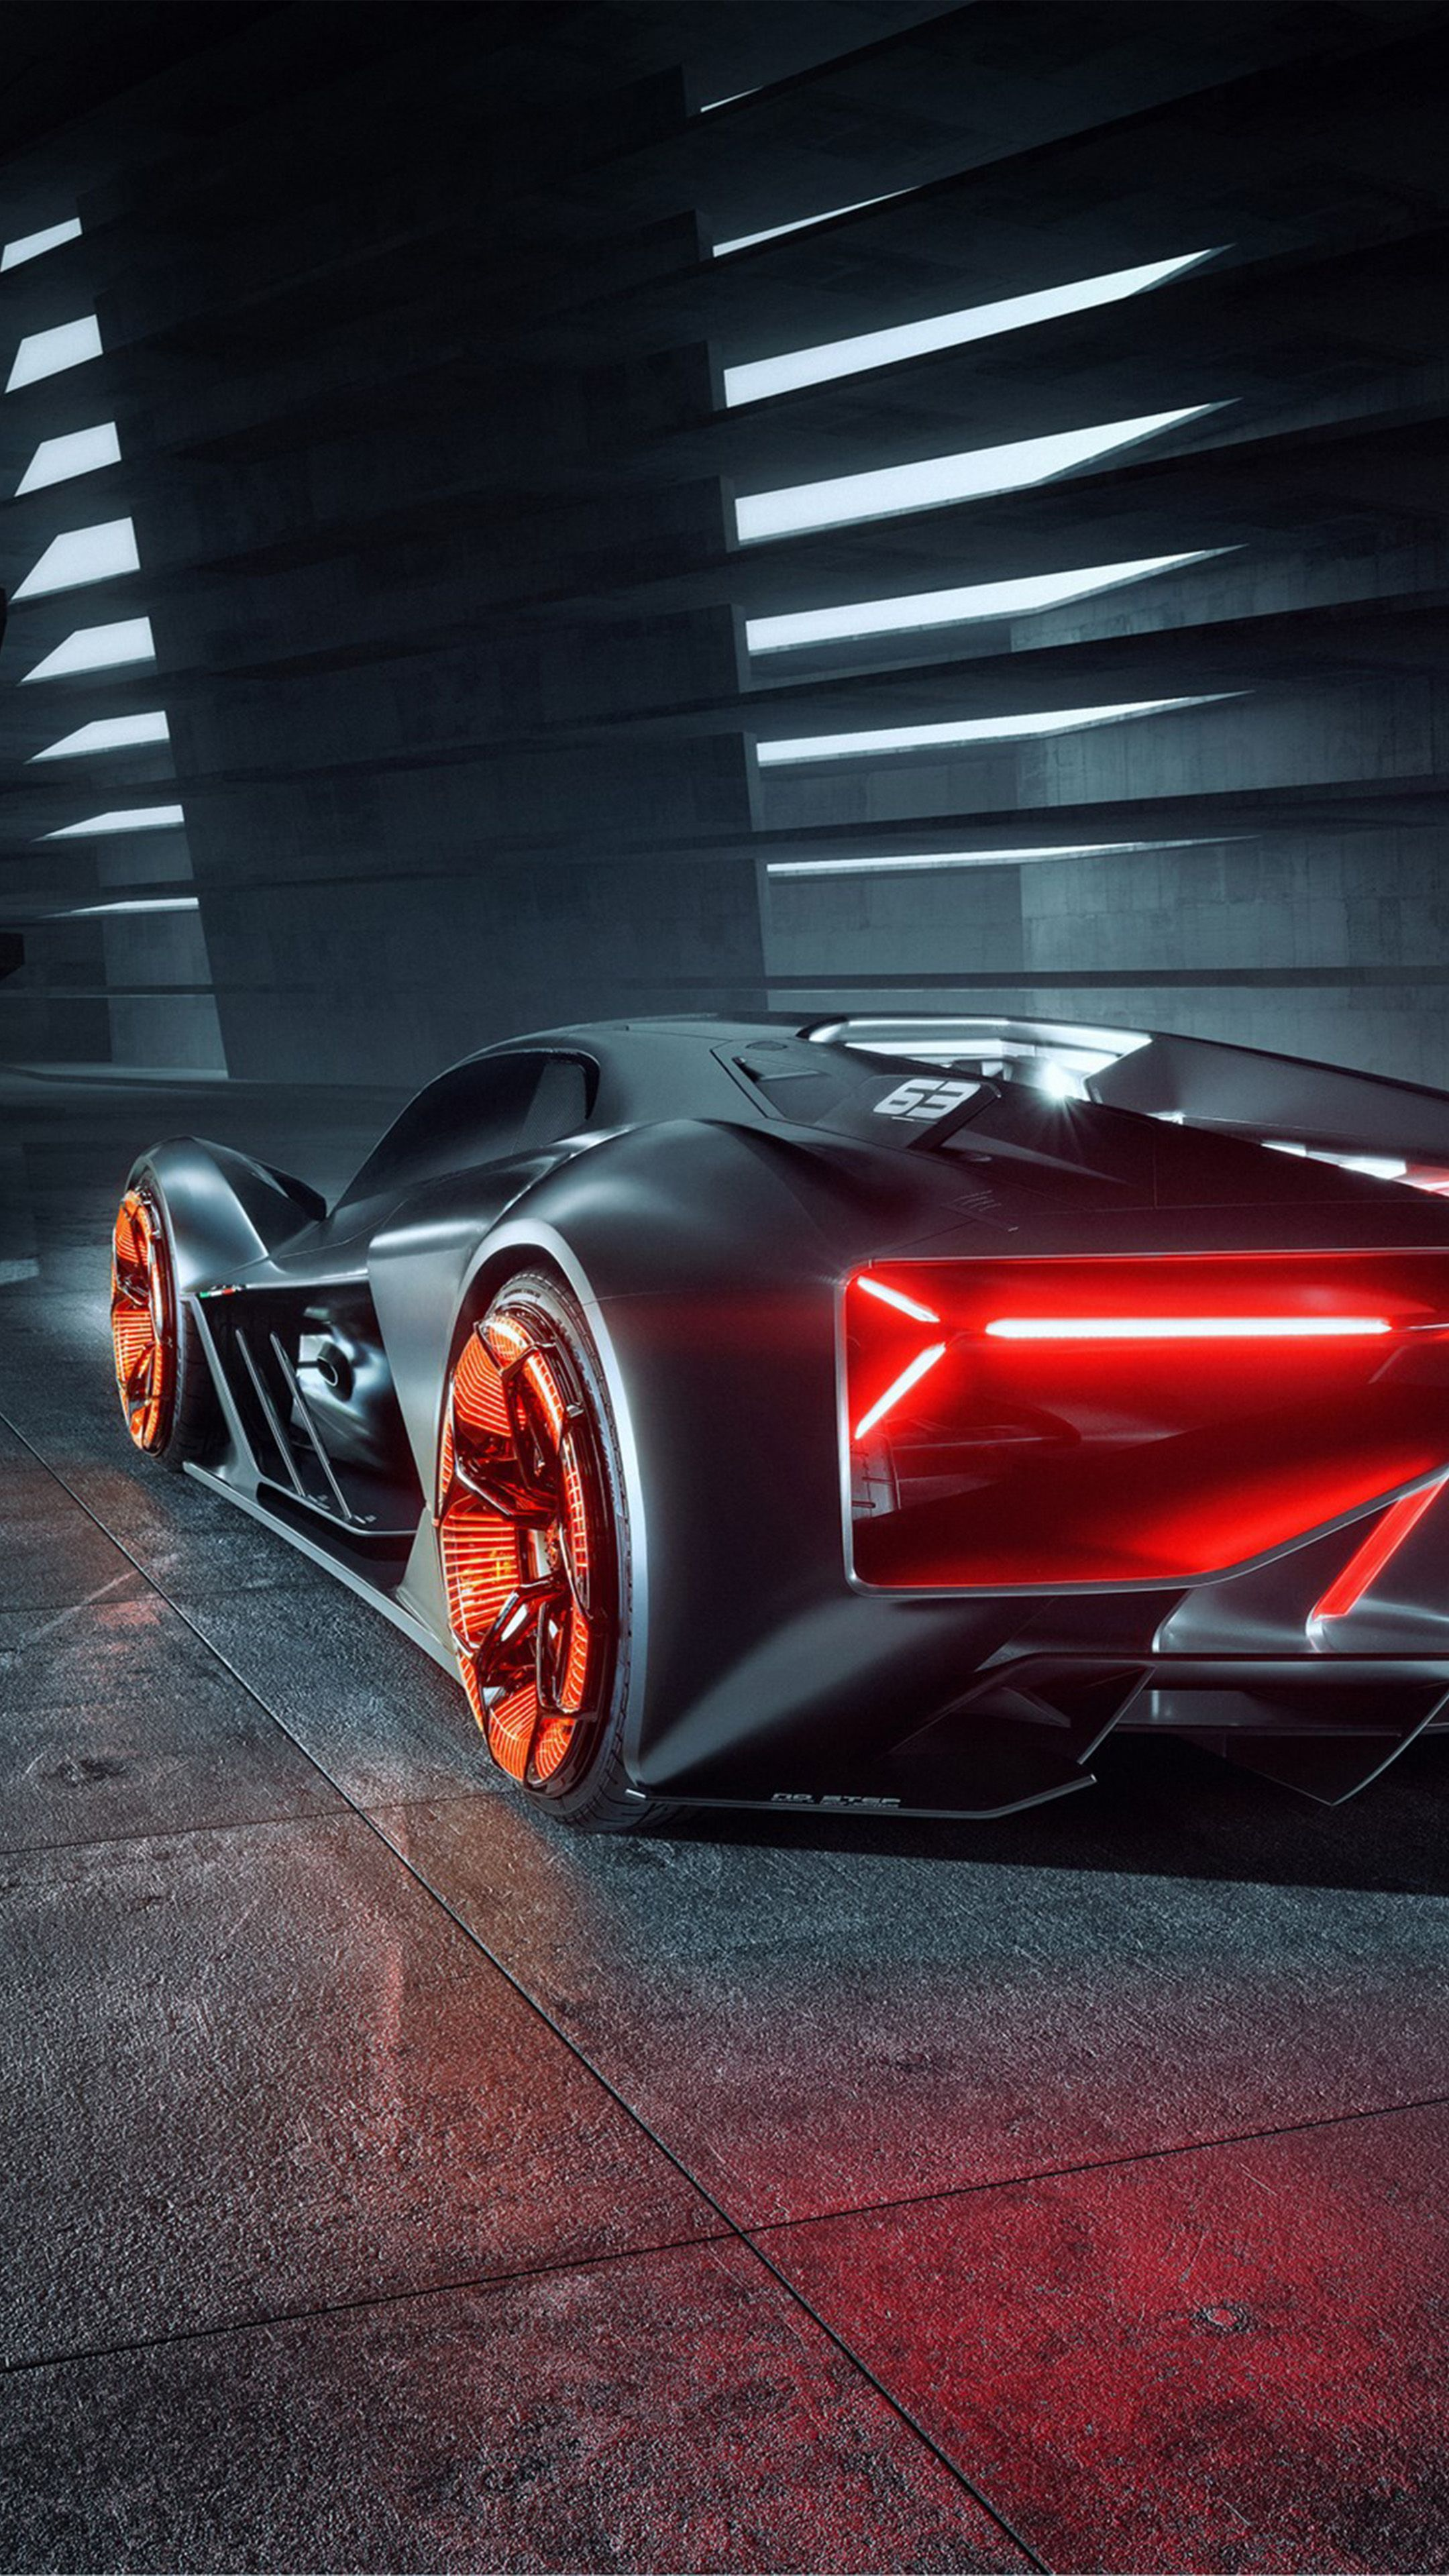 Lamborghini Terzo Millennio 4k Ultra Hd Mobile Wallpaper In 2020 Car Wallpaper For Mobile Sports Car Wallpaper Bmw Wallpapers